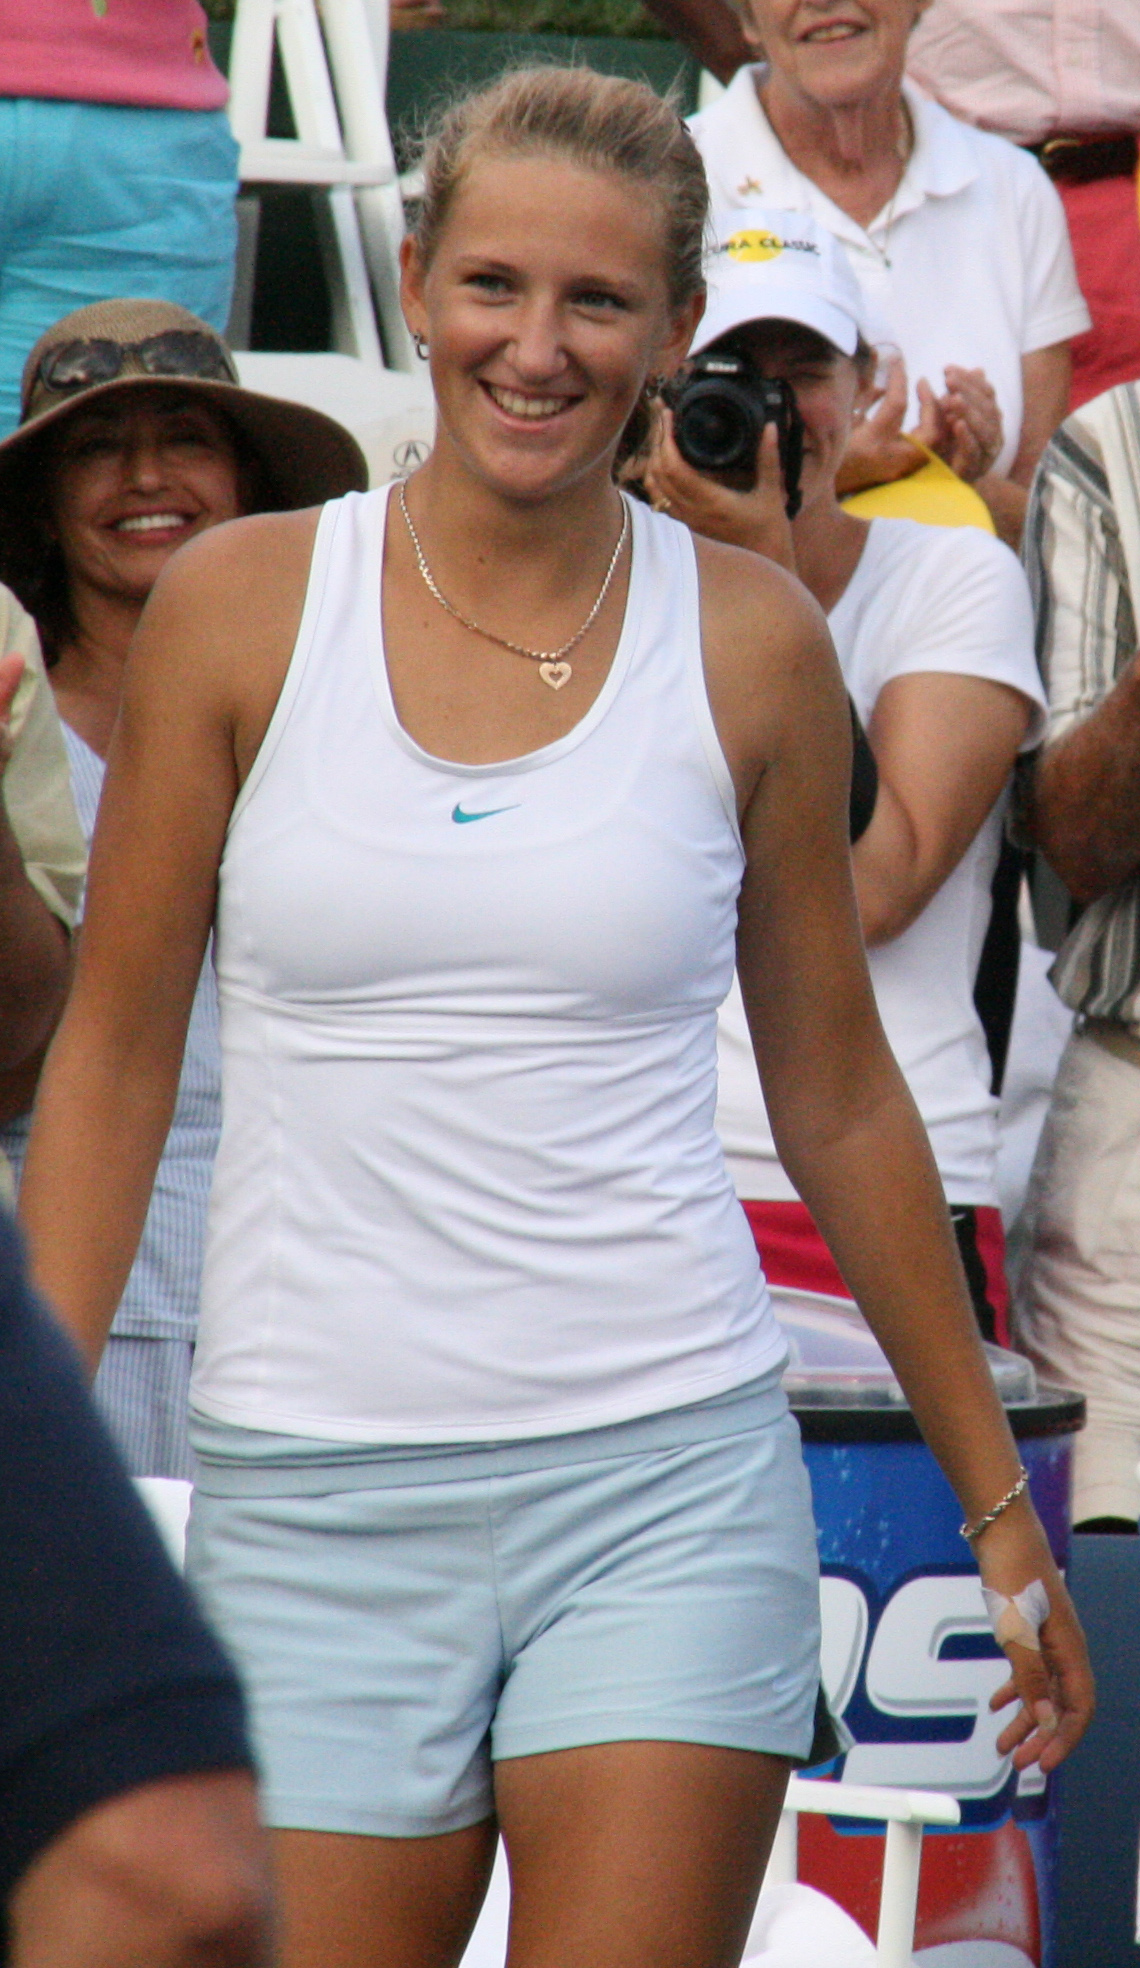 Sexy vika azarenka after ao win - 1 part 1